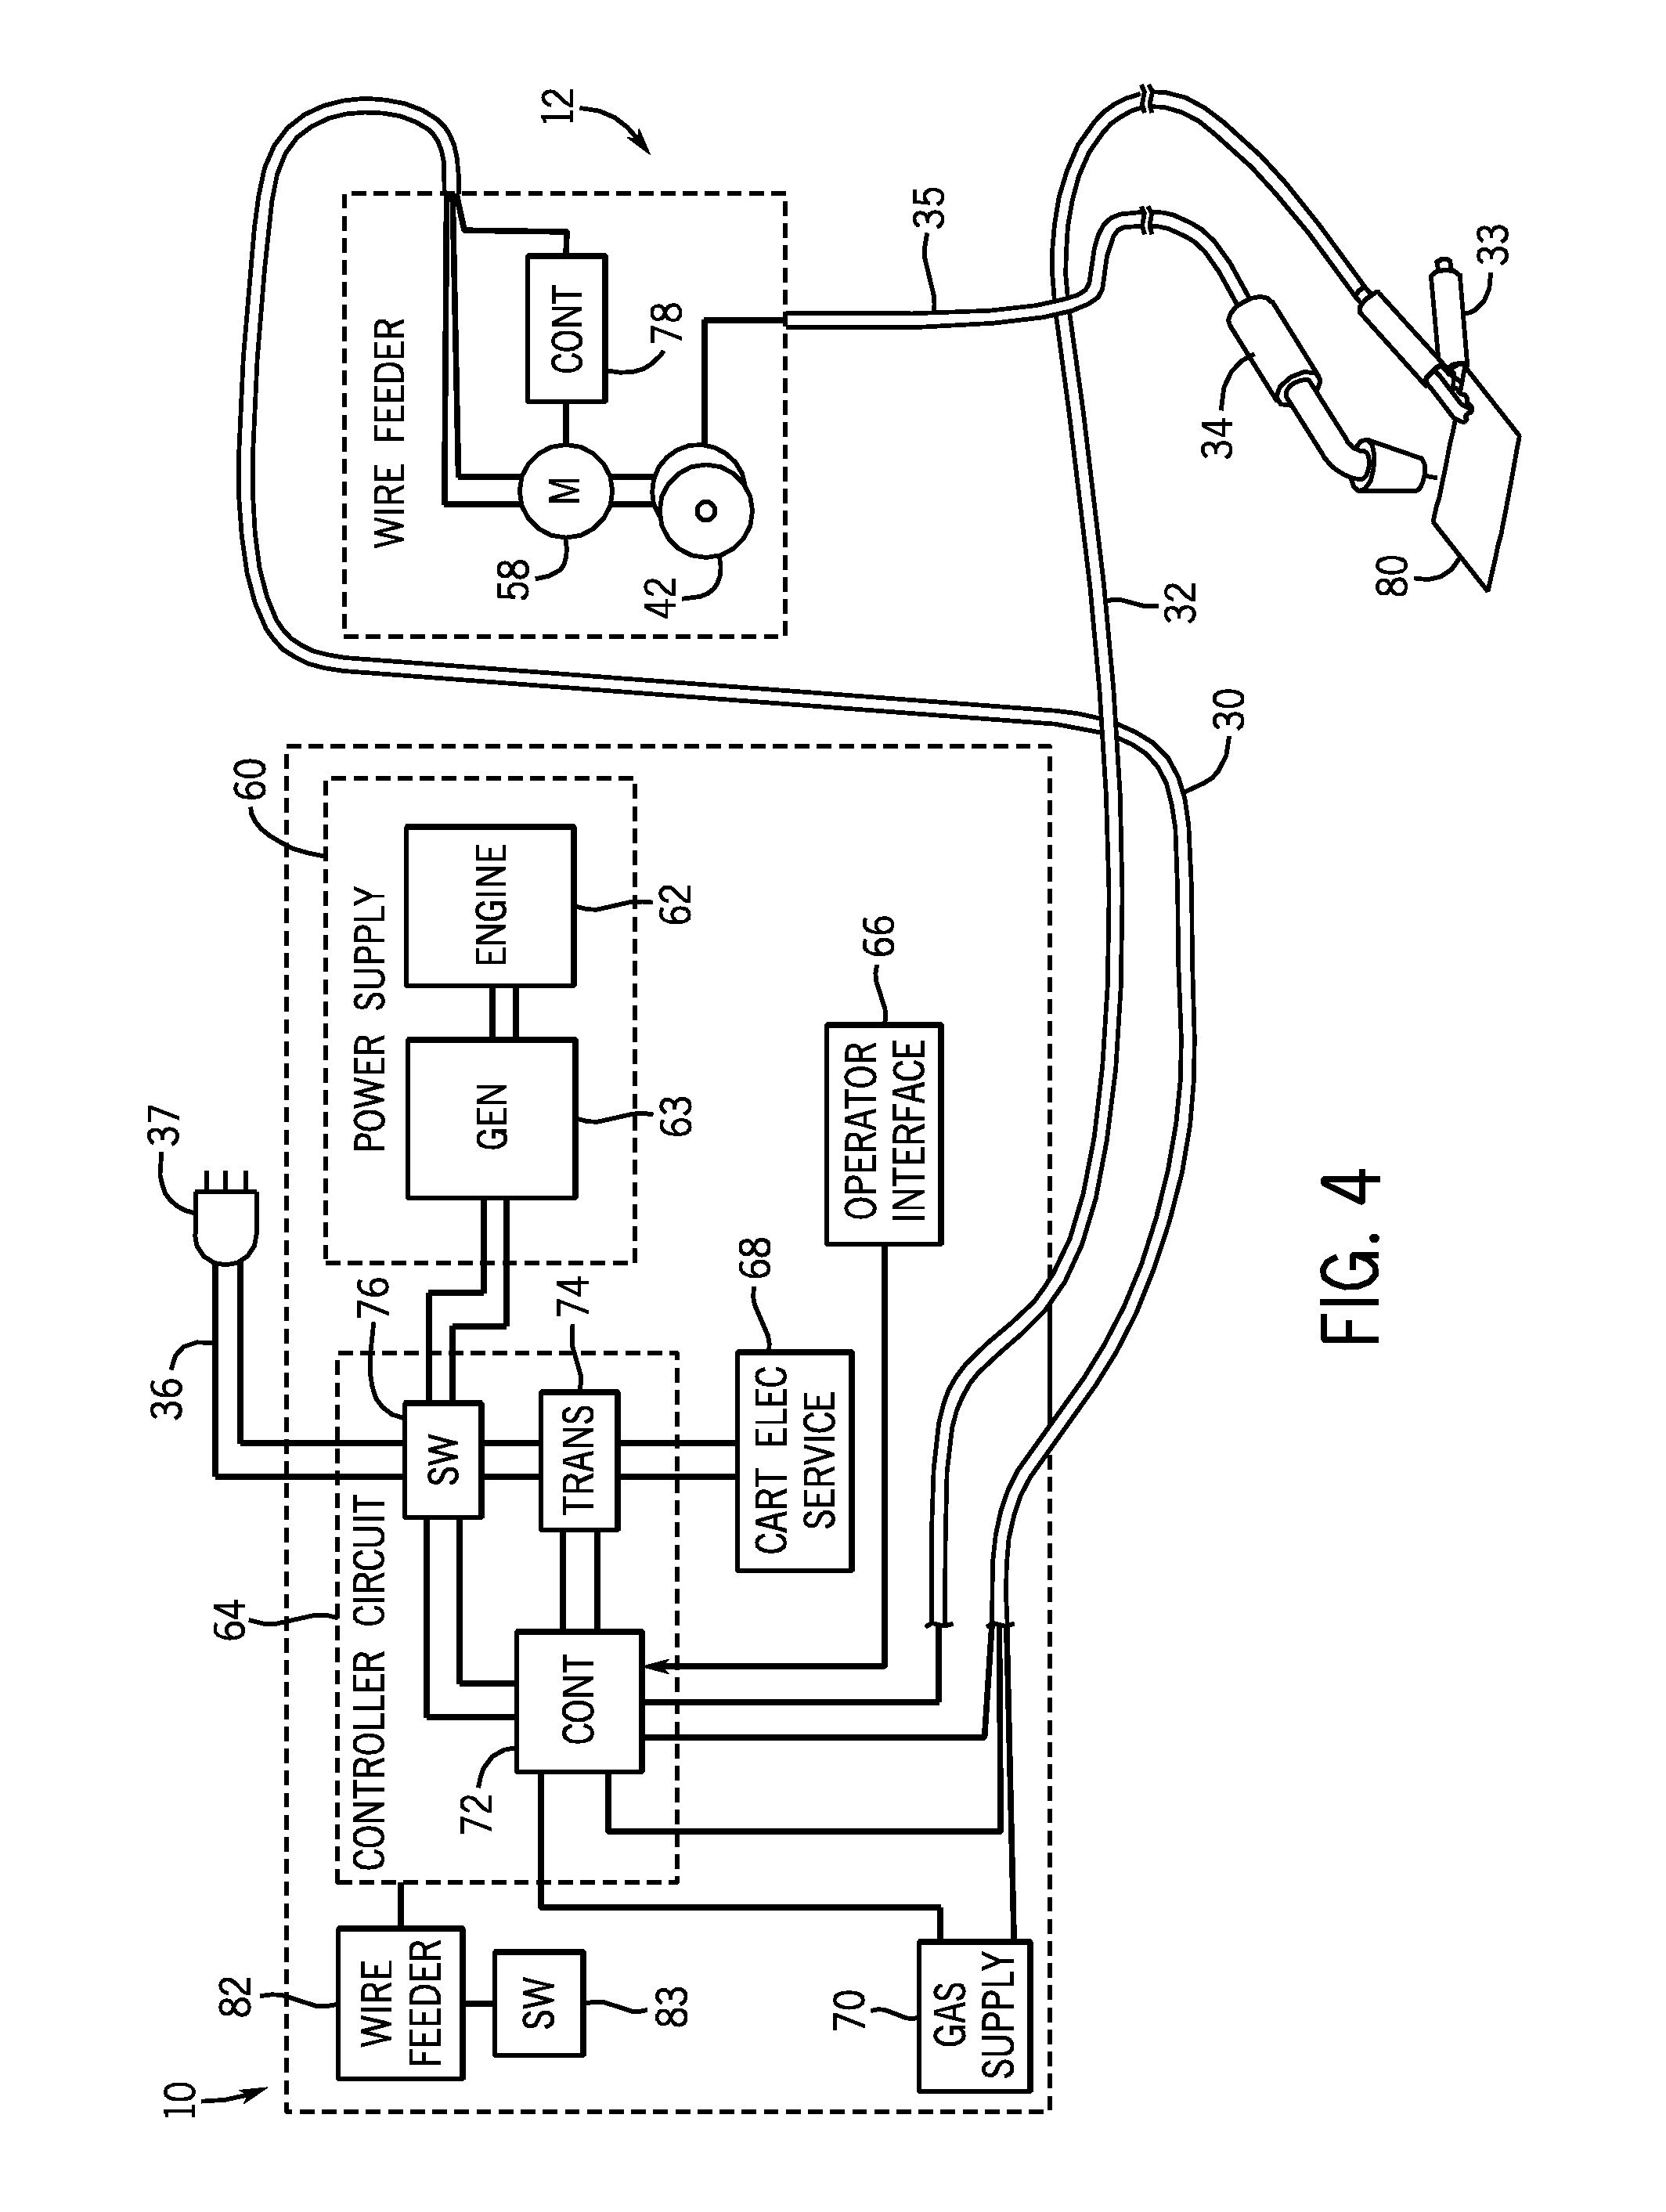 Lincoln 225 Arc Welder Wiring Diagram from 2020cadillac.com